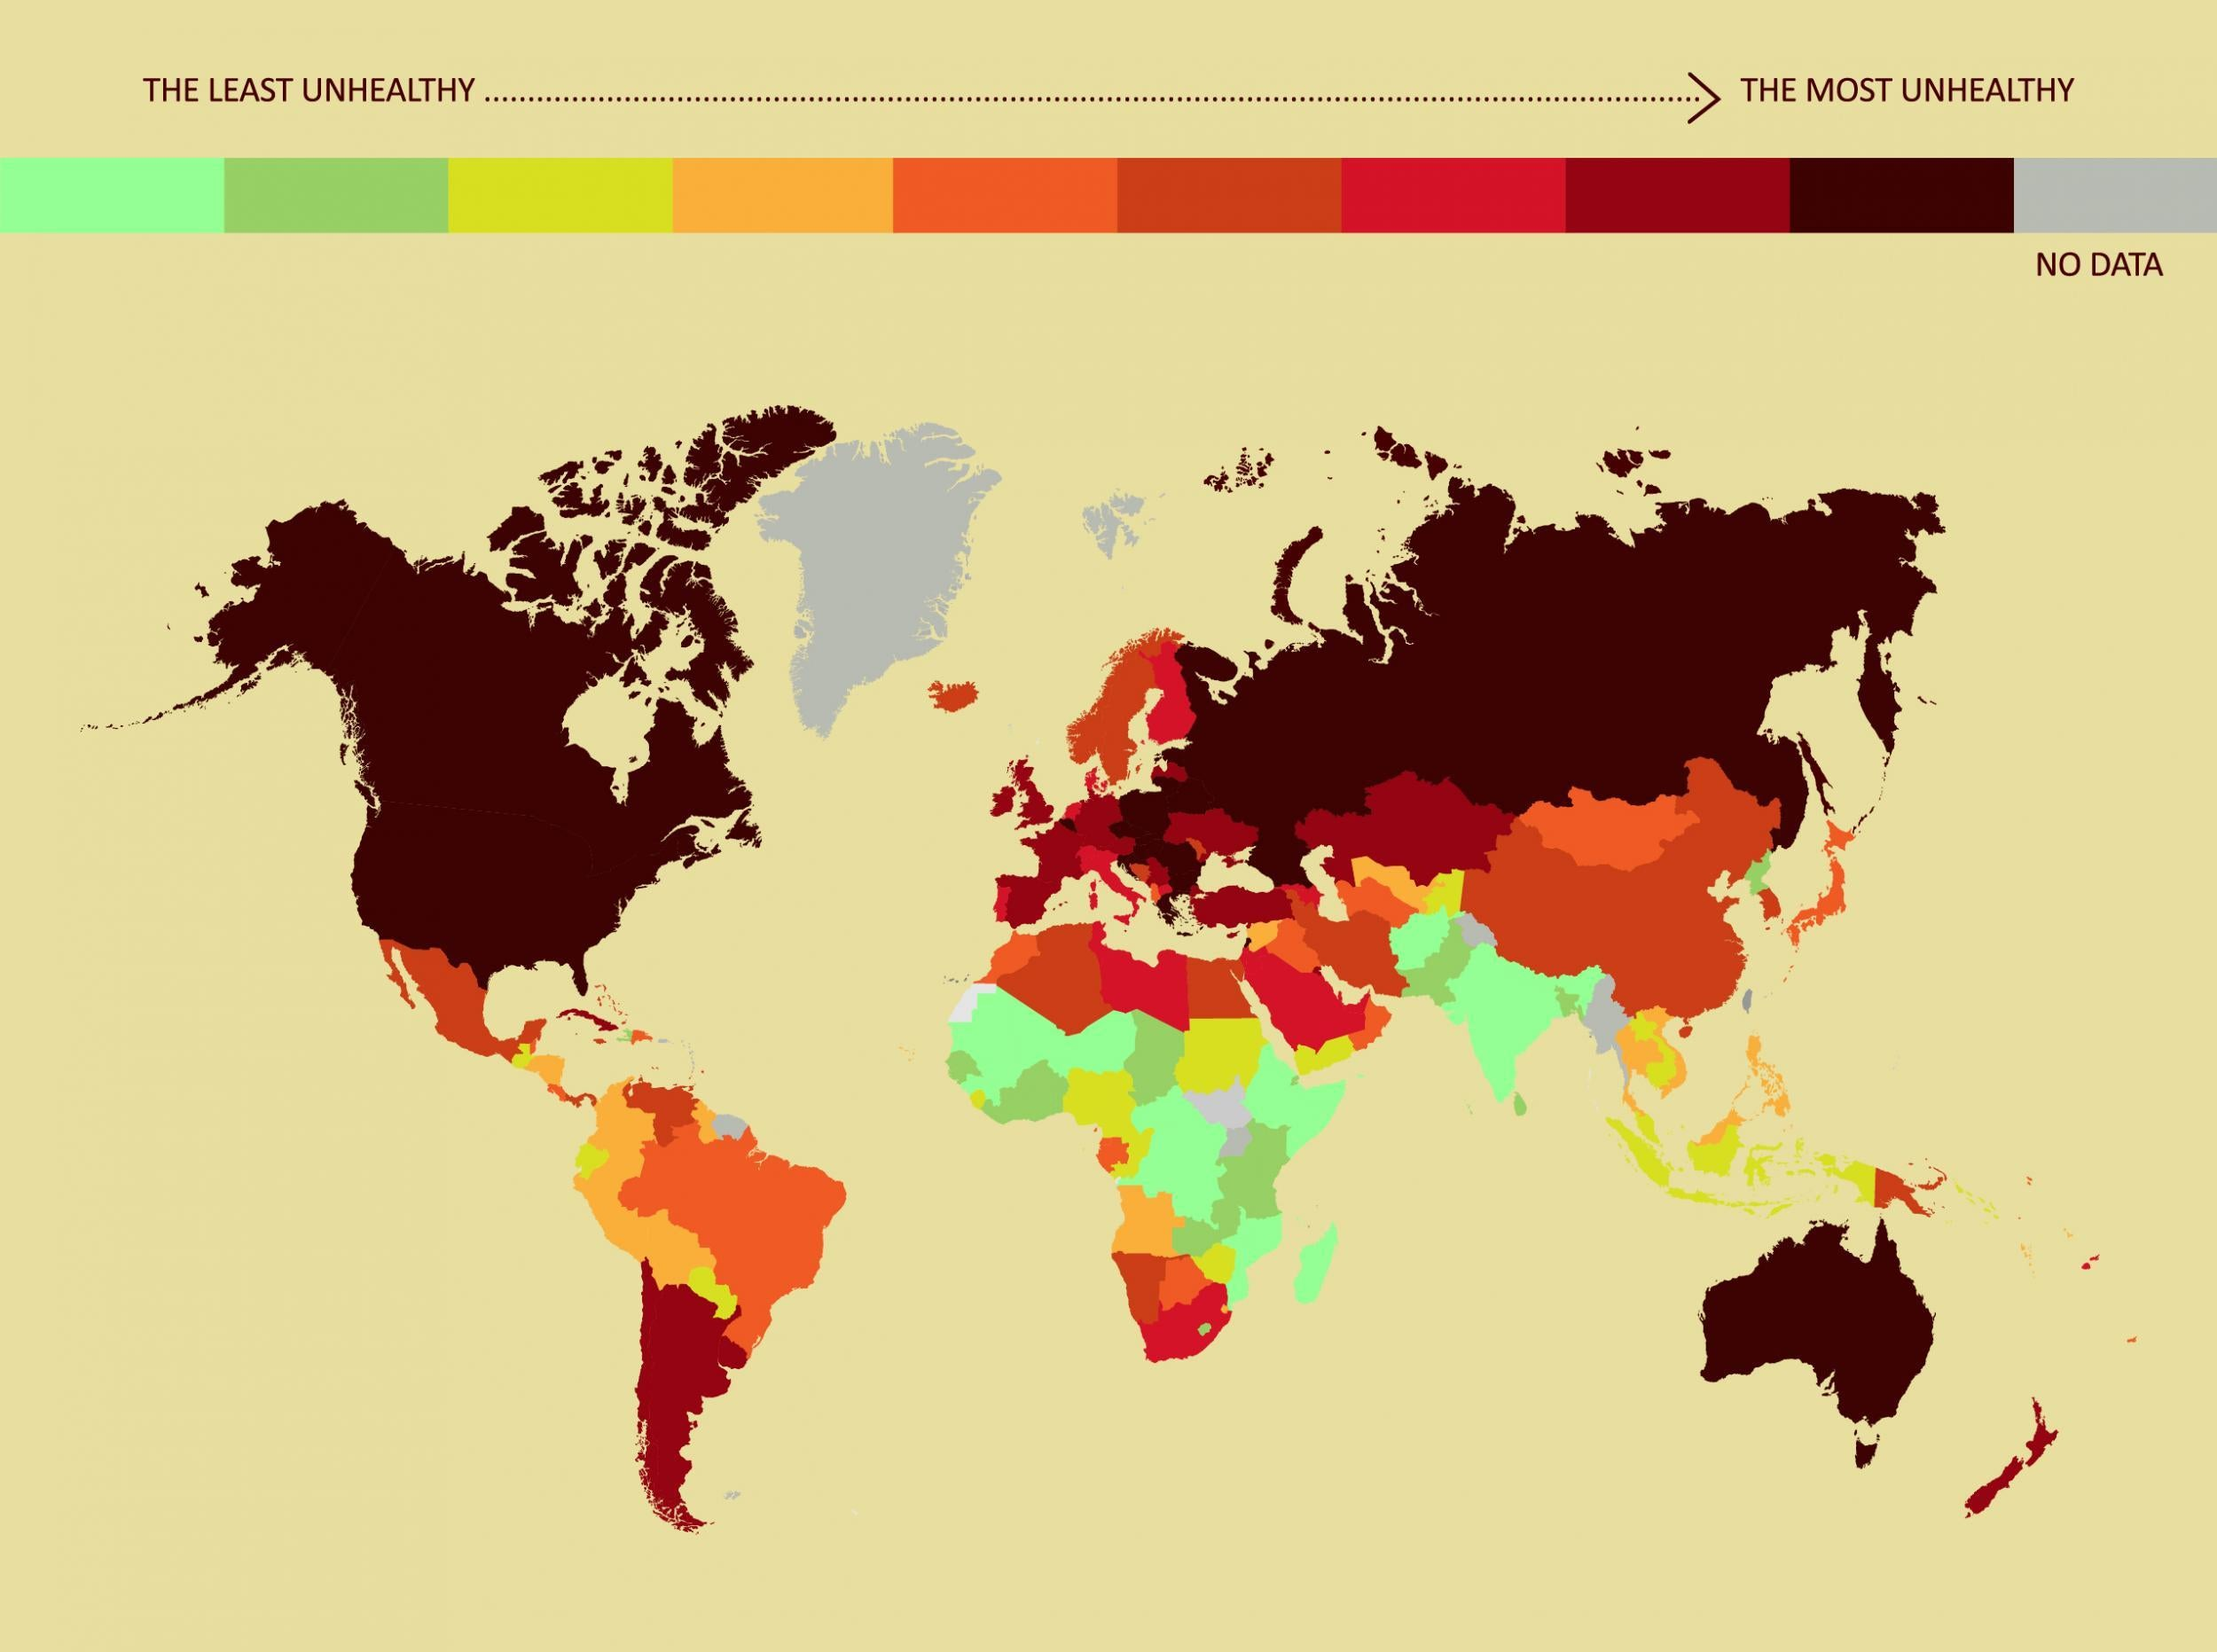 The dirtiest countries in the world